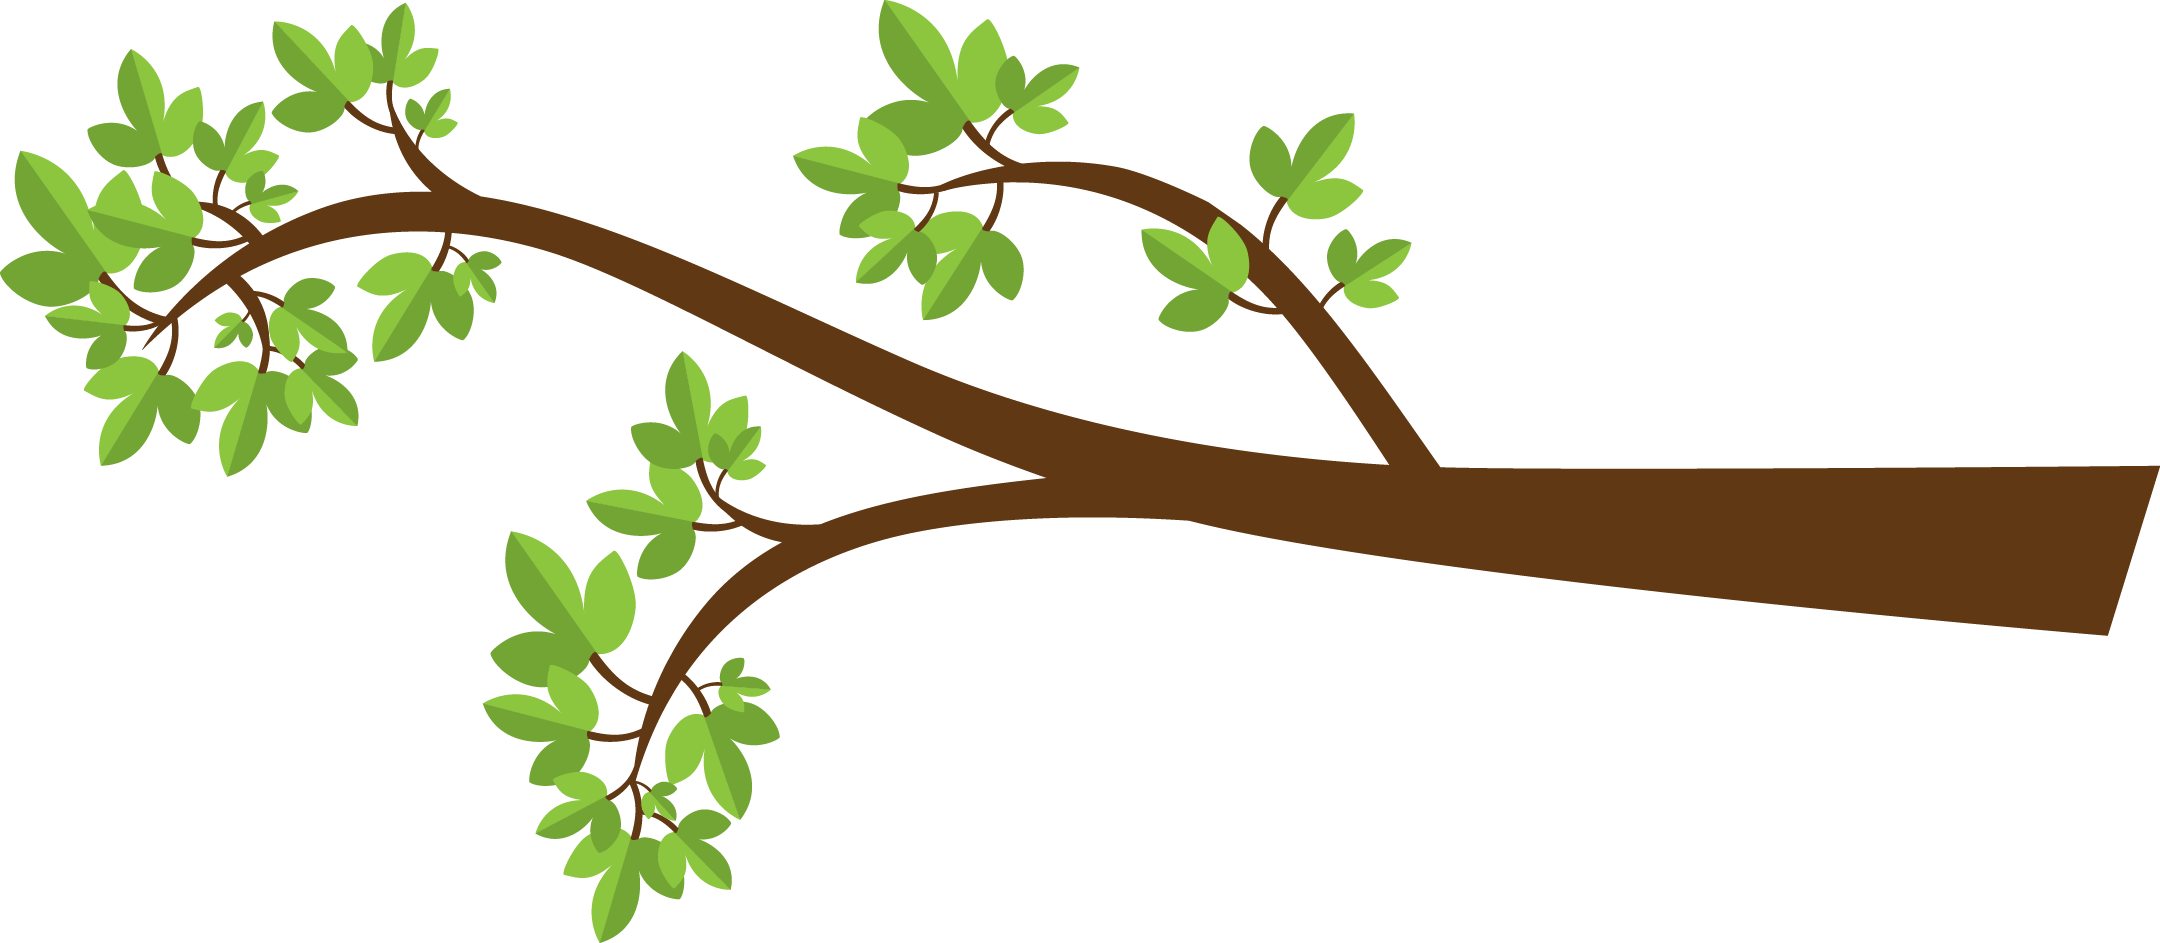 tree branch vector png